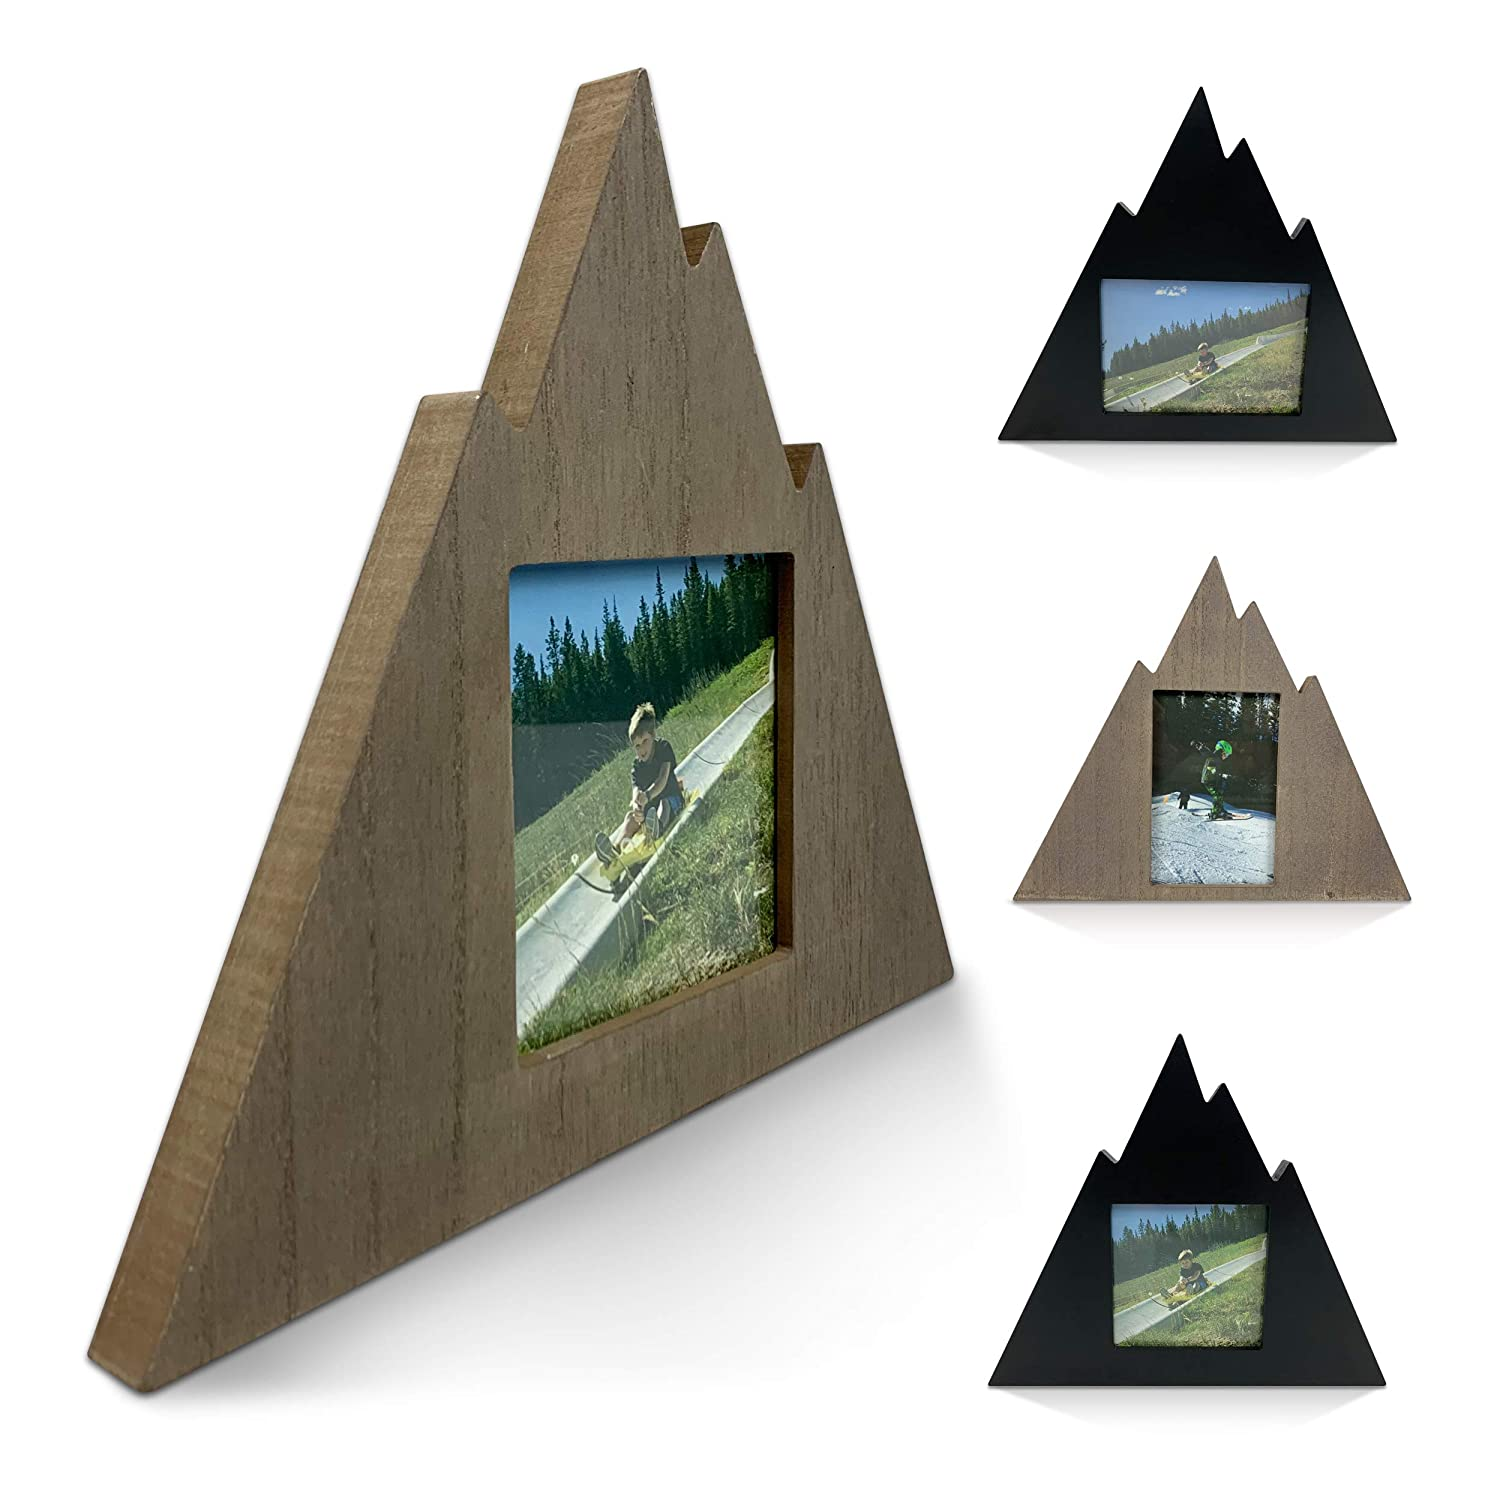 Mountain Shaped Outdoor Picture Photo Frame - Contemporary Geometric Modern Home Mountain Cabin Decor Wooden Wall Picture Frame (Rustic Gray - 4x4 Picture Frame)